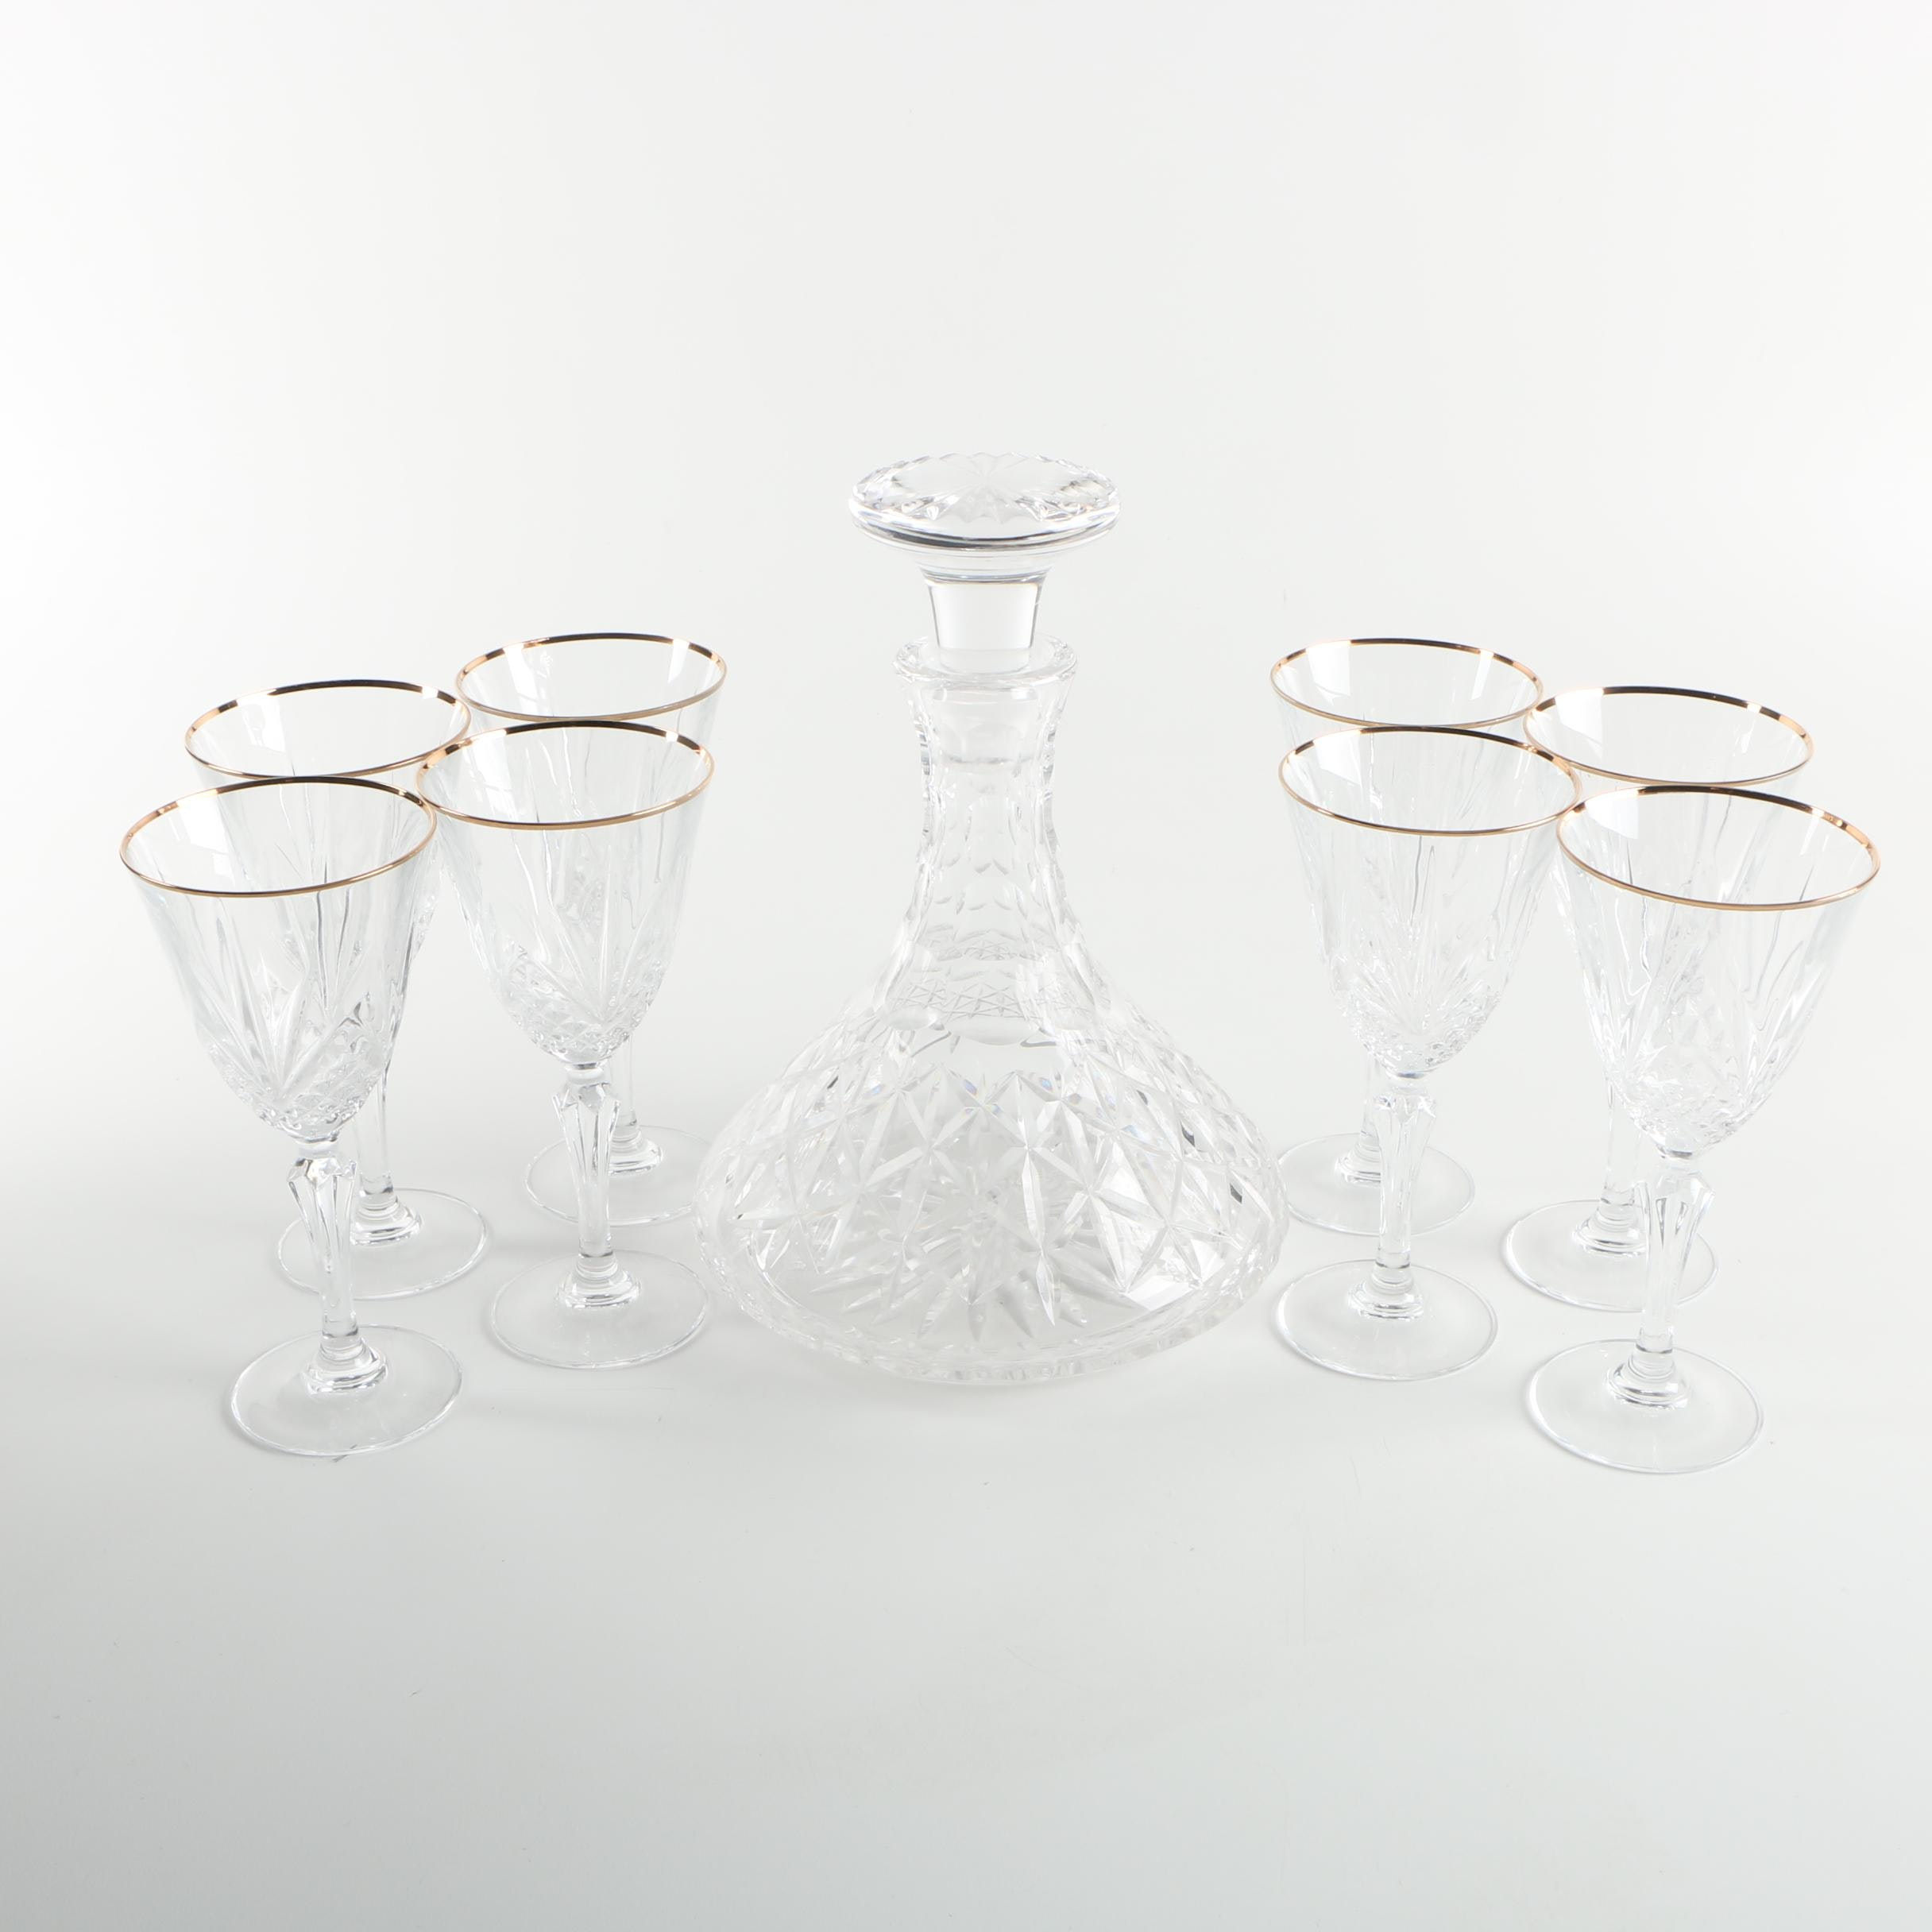 Crystal Decanter and Crystal Wine Glasses